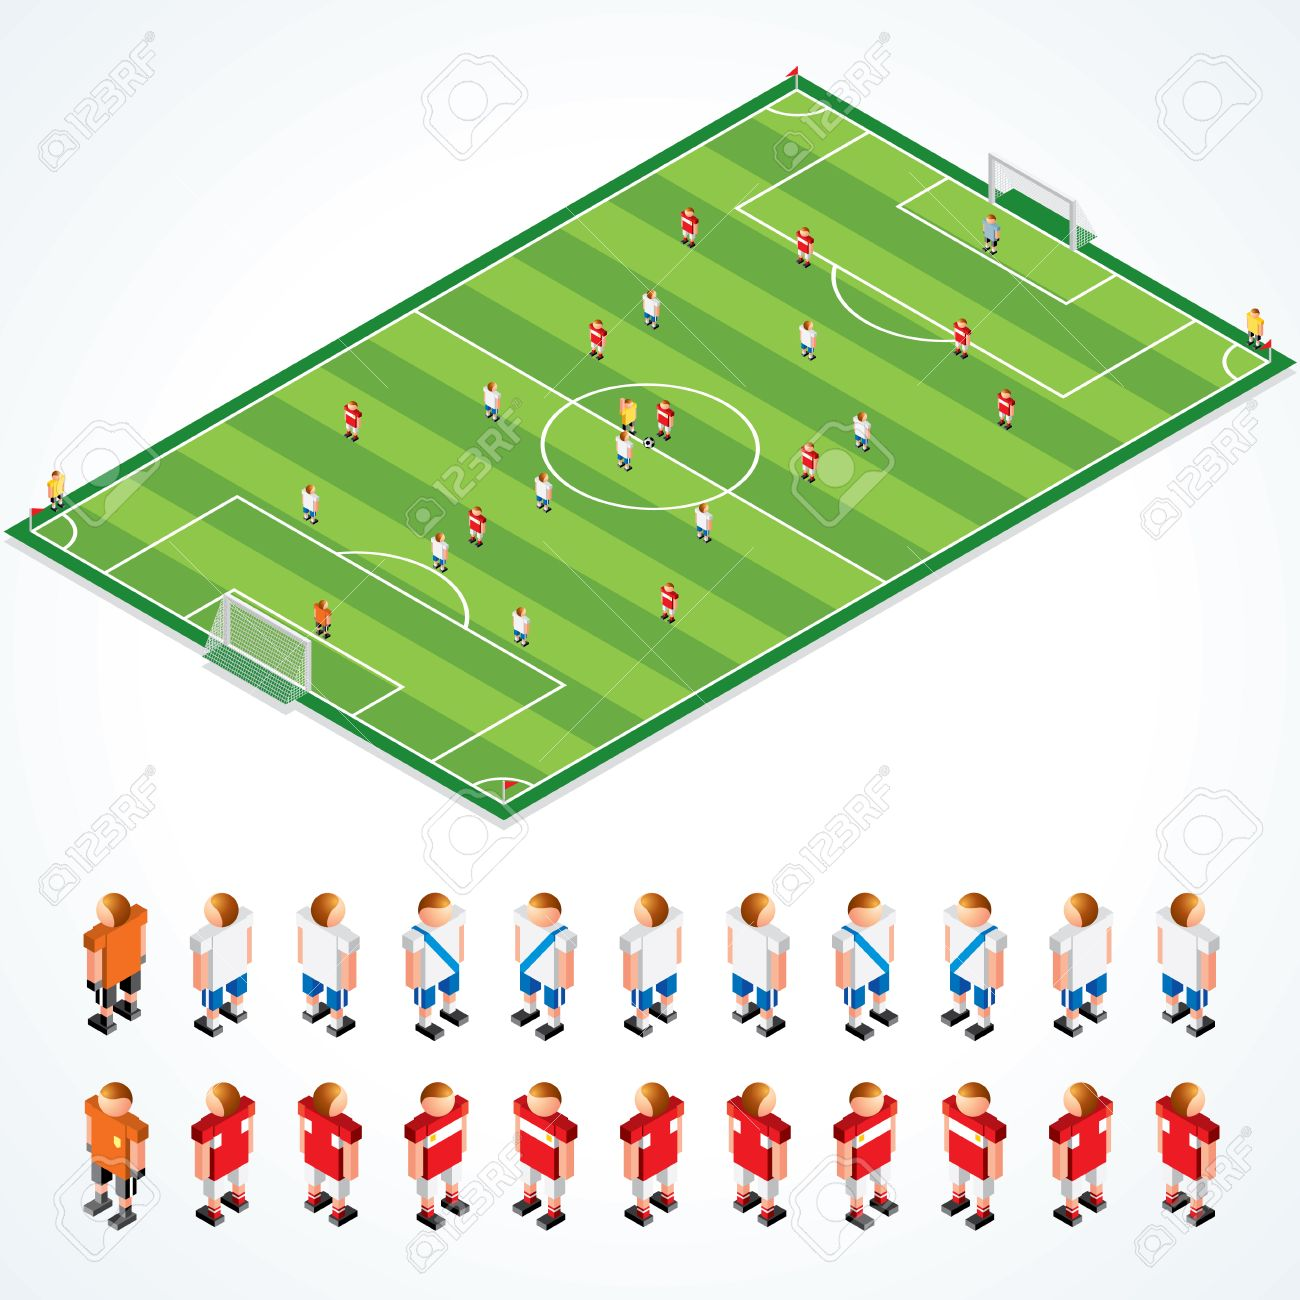 Soccer tactical Kit - isometric illustration of football field and abstract teams, all elements separated and grouped Stock Vector - 9060697